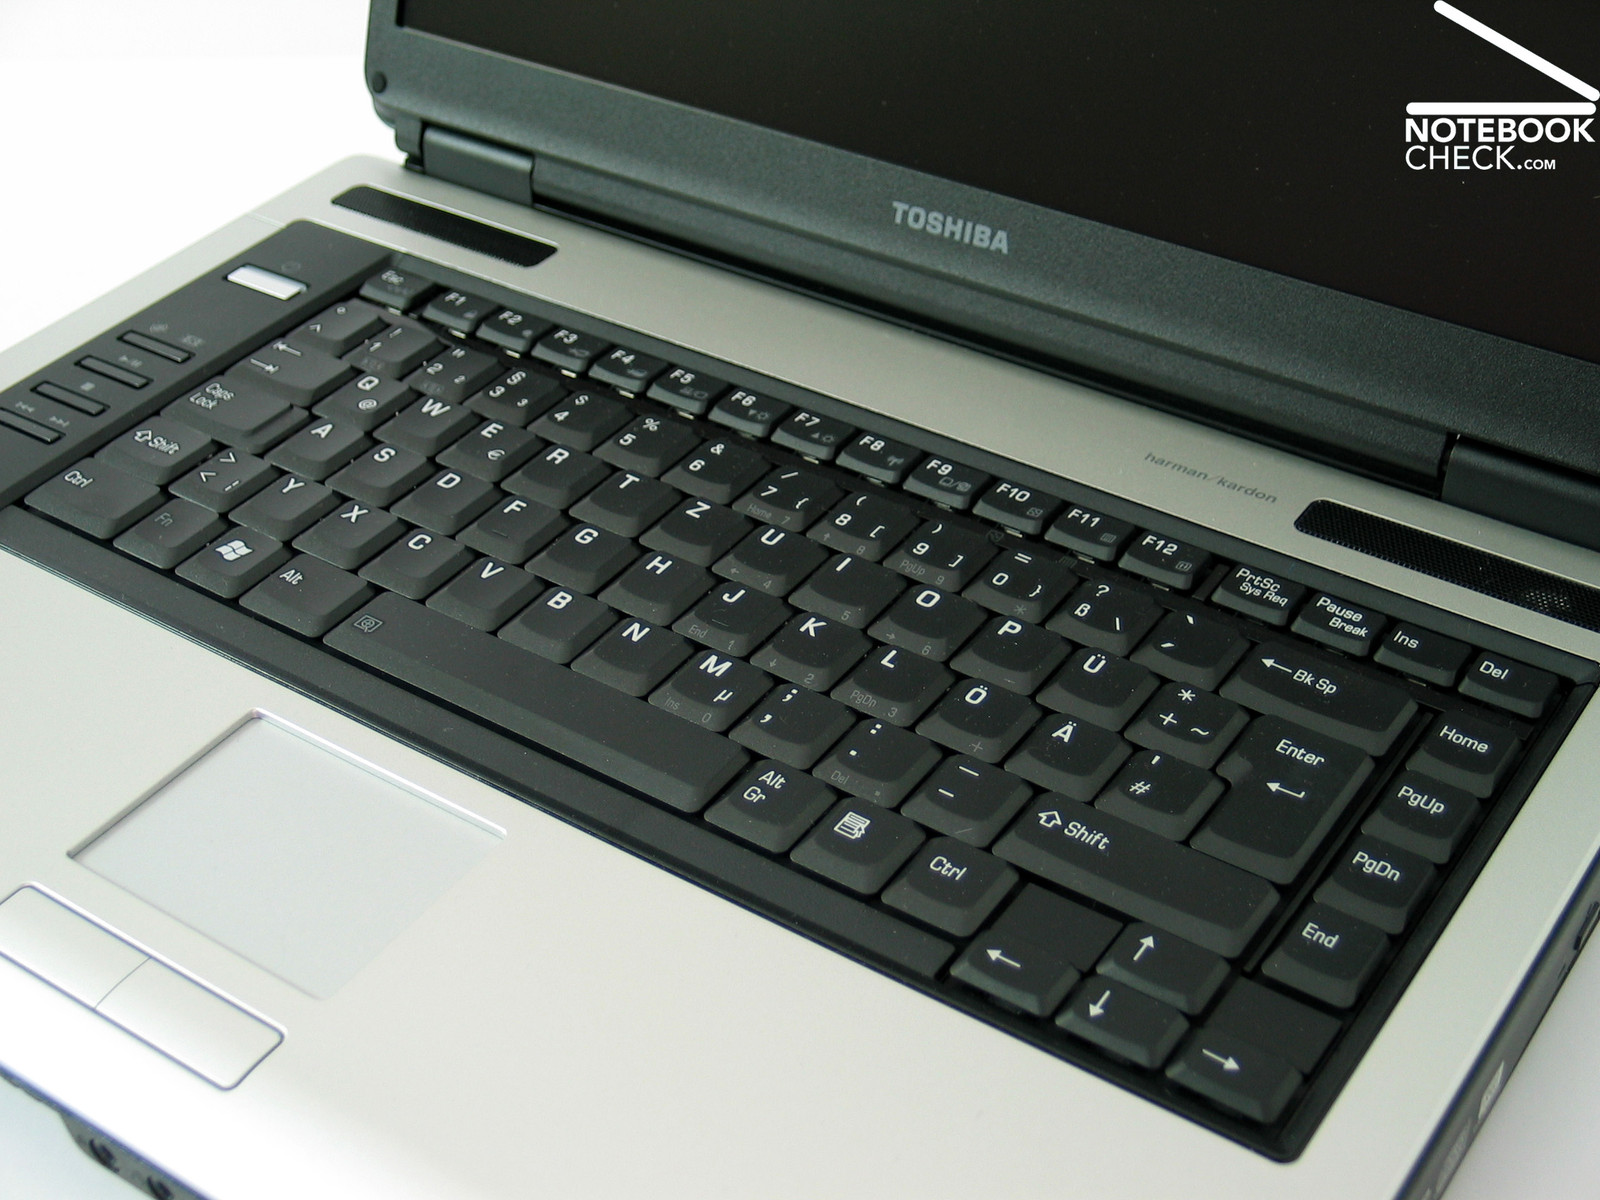 Review Toshiba Satellite Pro A100 Notebook Notebookcheck Net Reviews